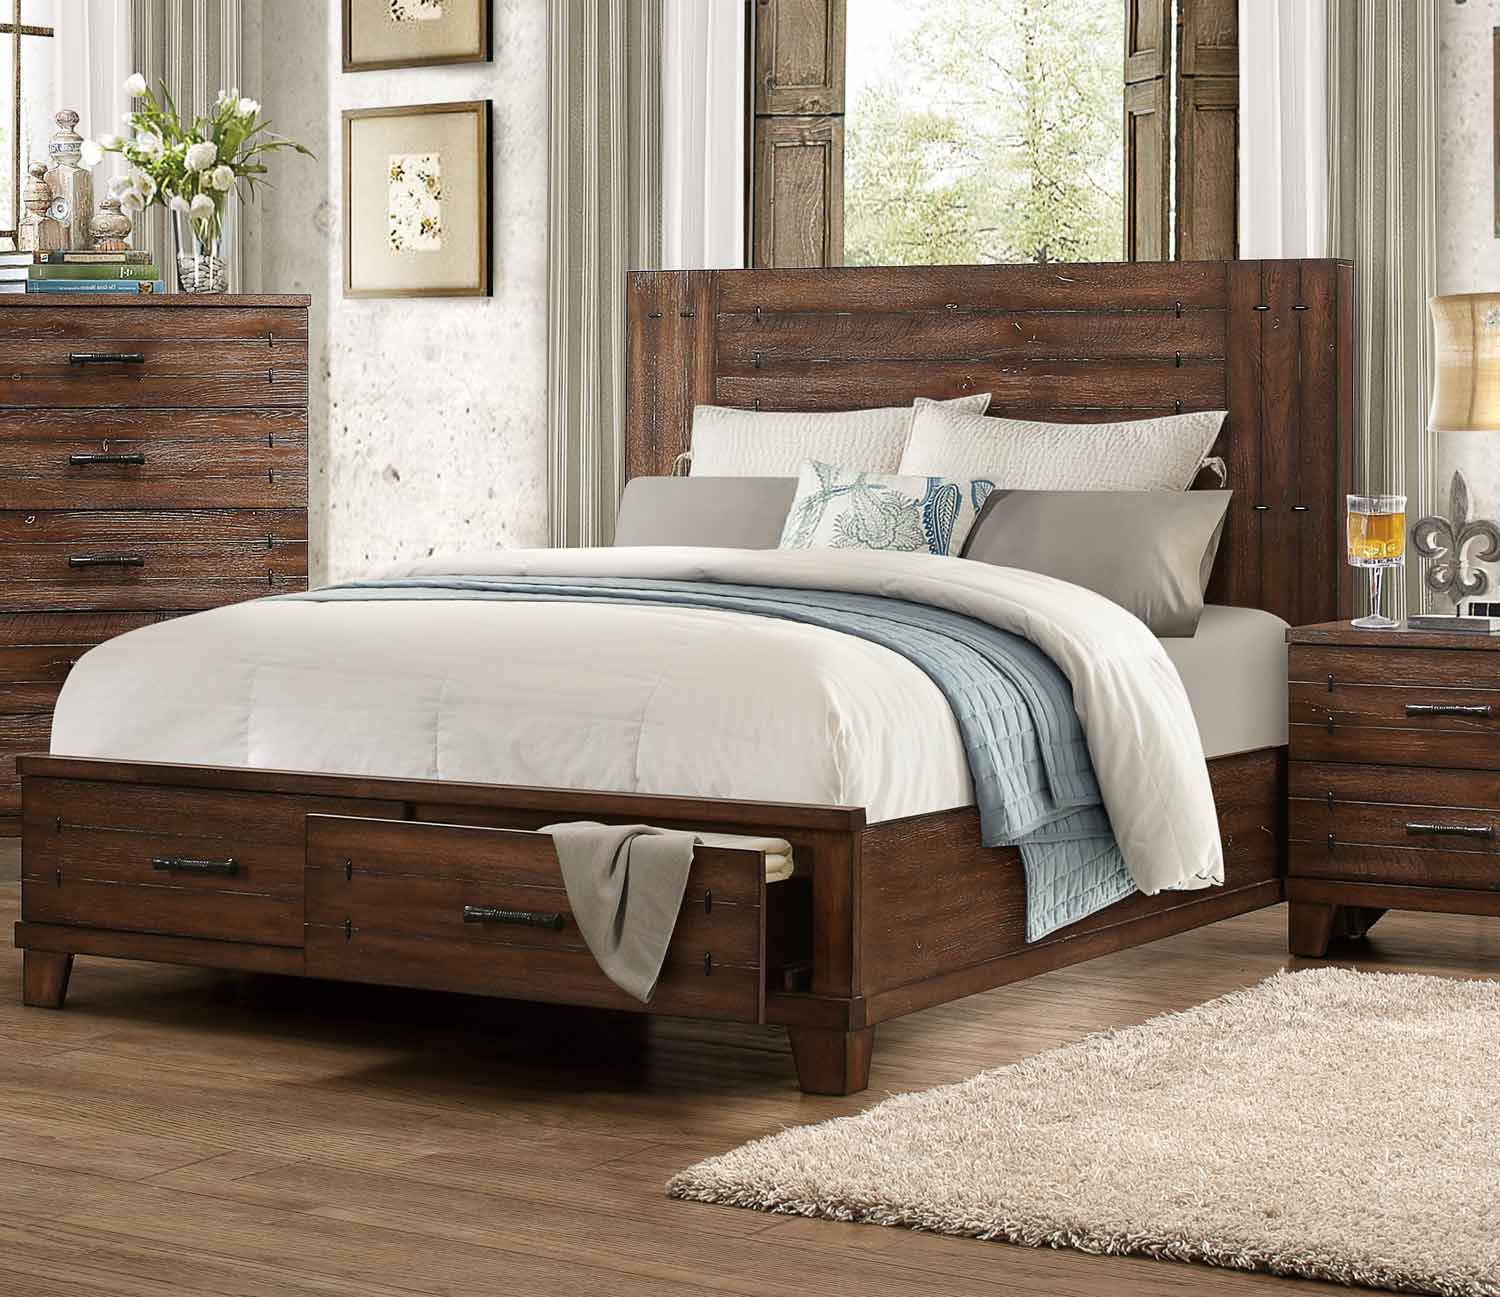 Homelegance Brazoria Bed - Distressed Natural Wood